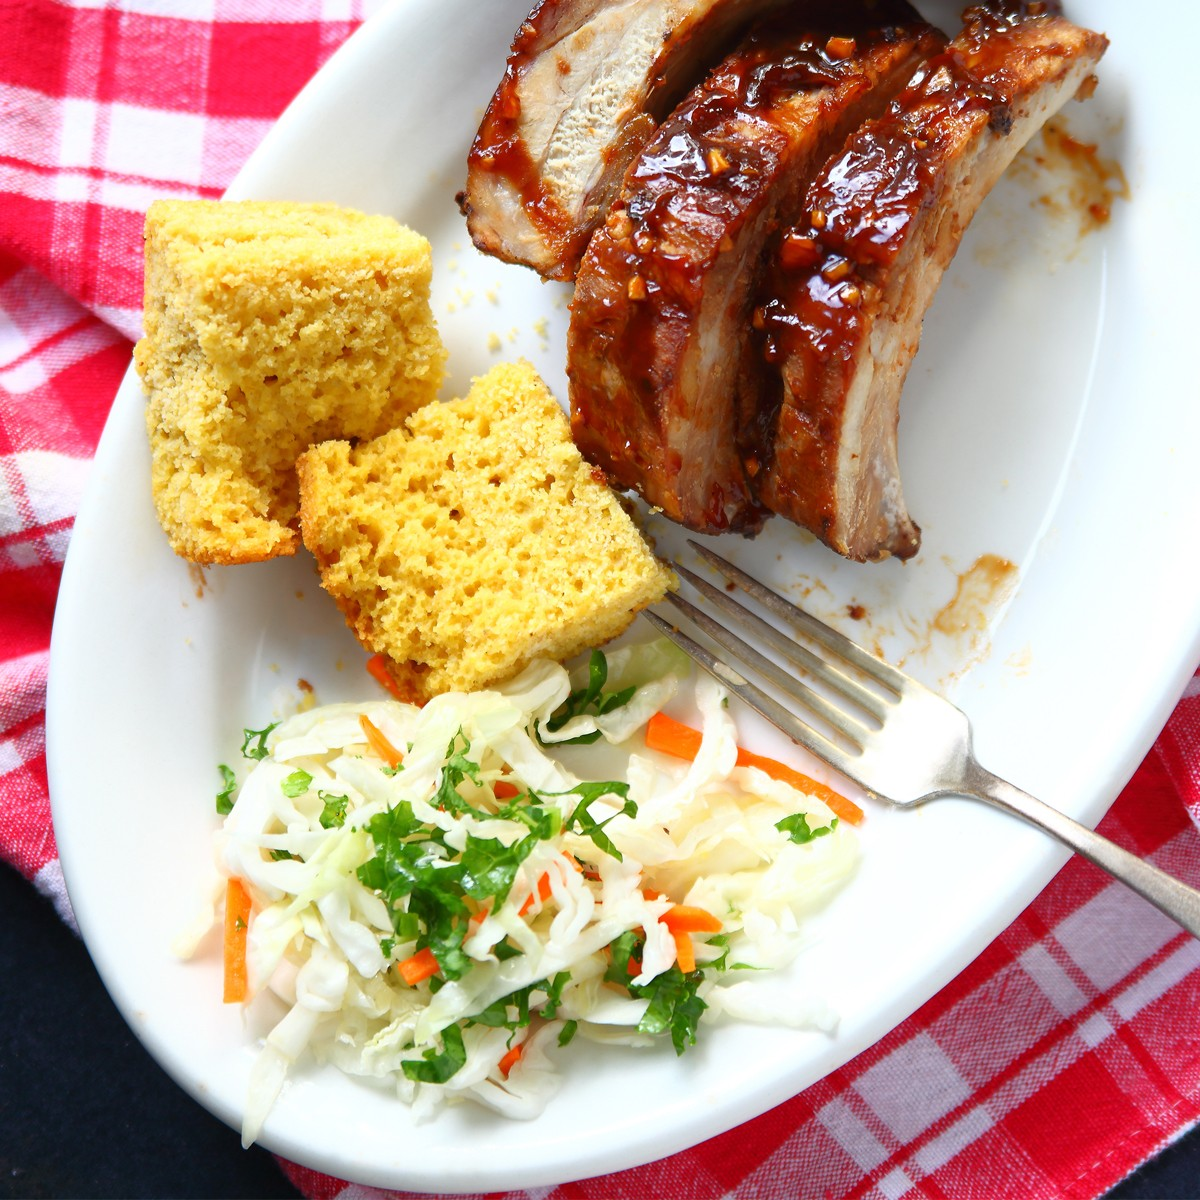 Sweet and Spicy BBQ Ribs with homemade cornbread - Three Aussie Farmers Sweet and Spicy BBQ Pork Ribs